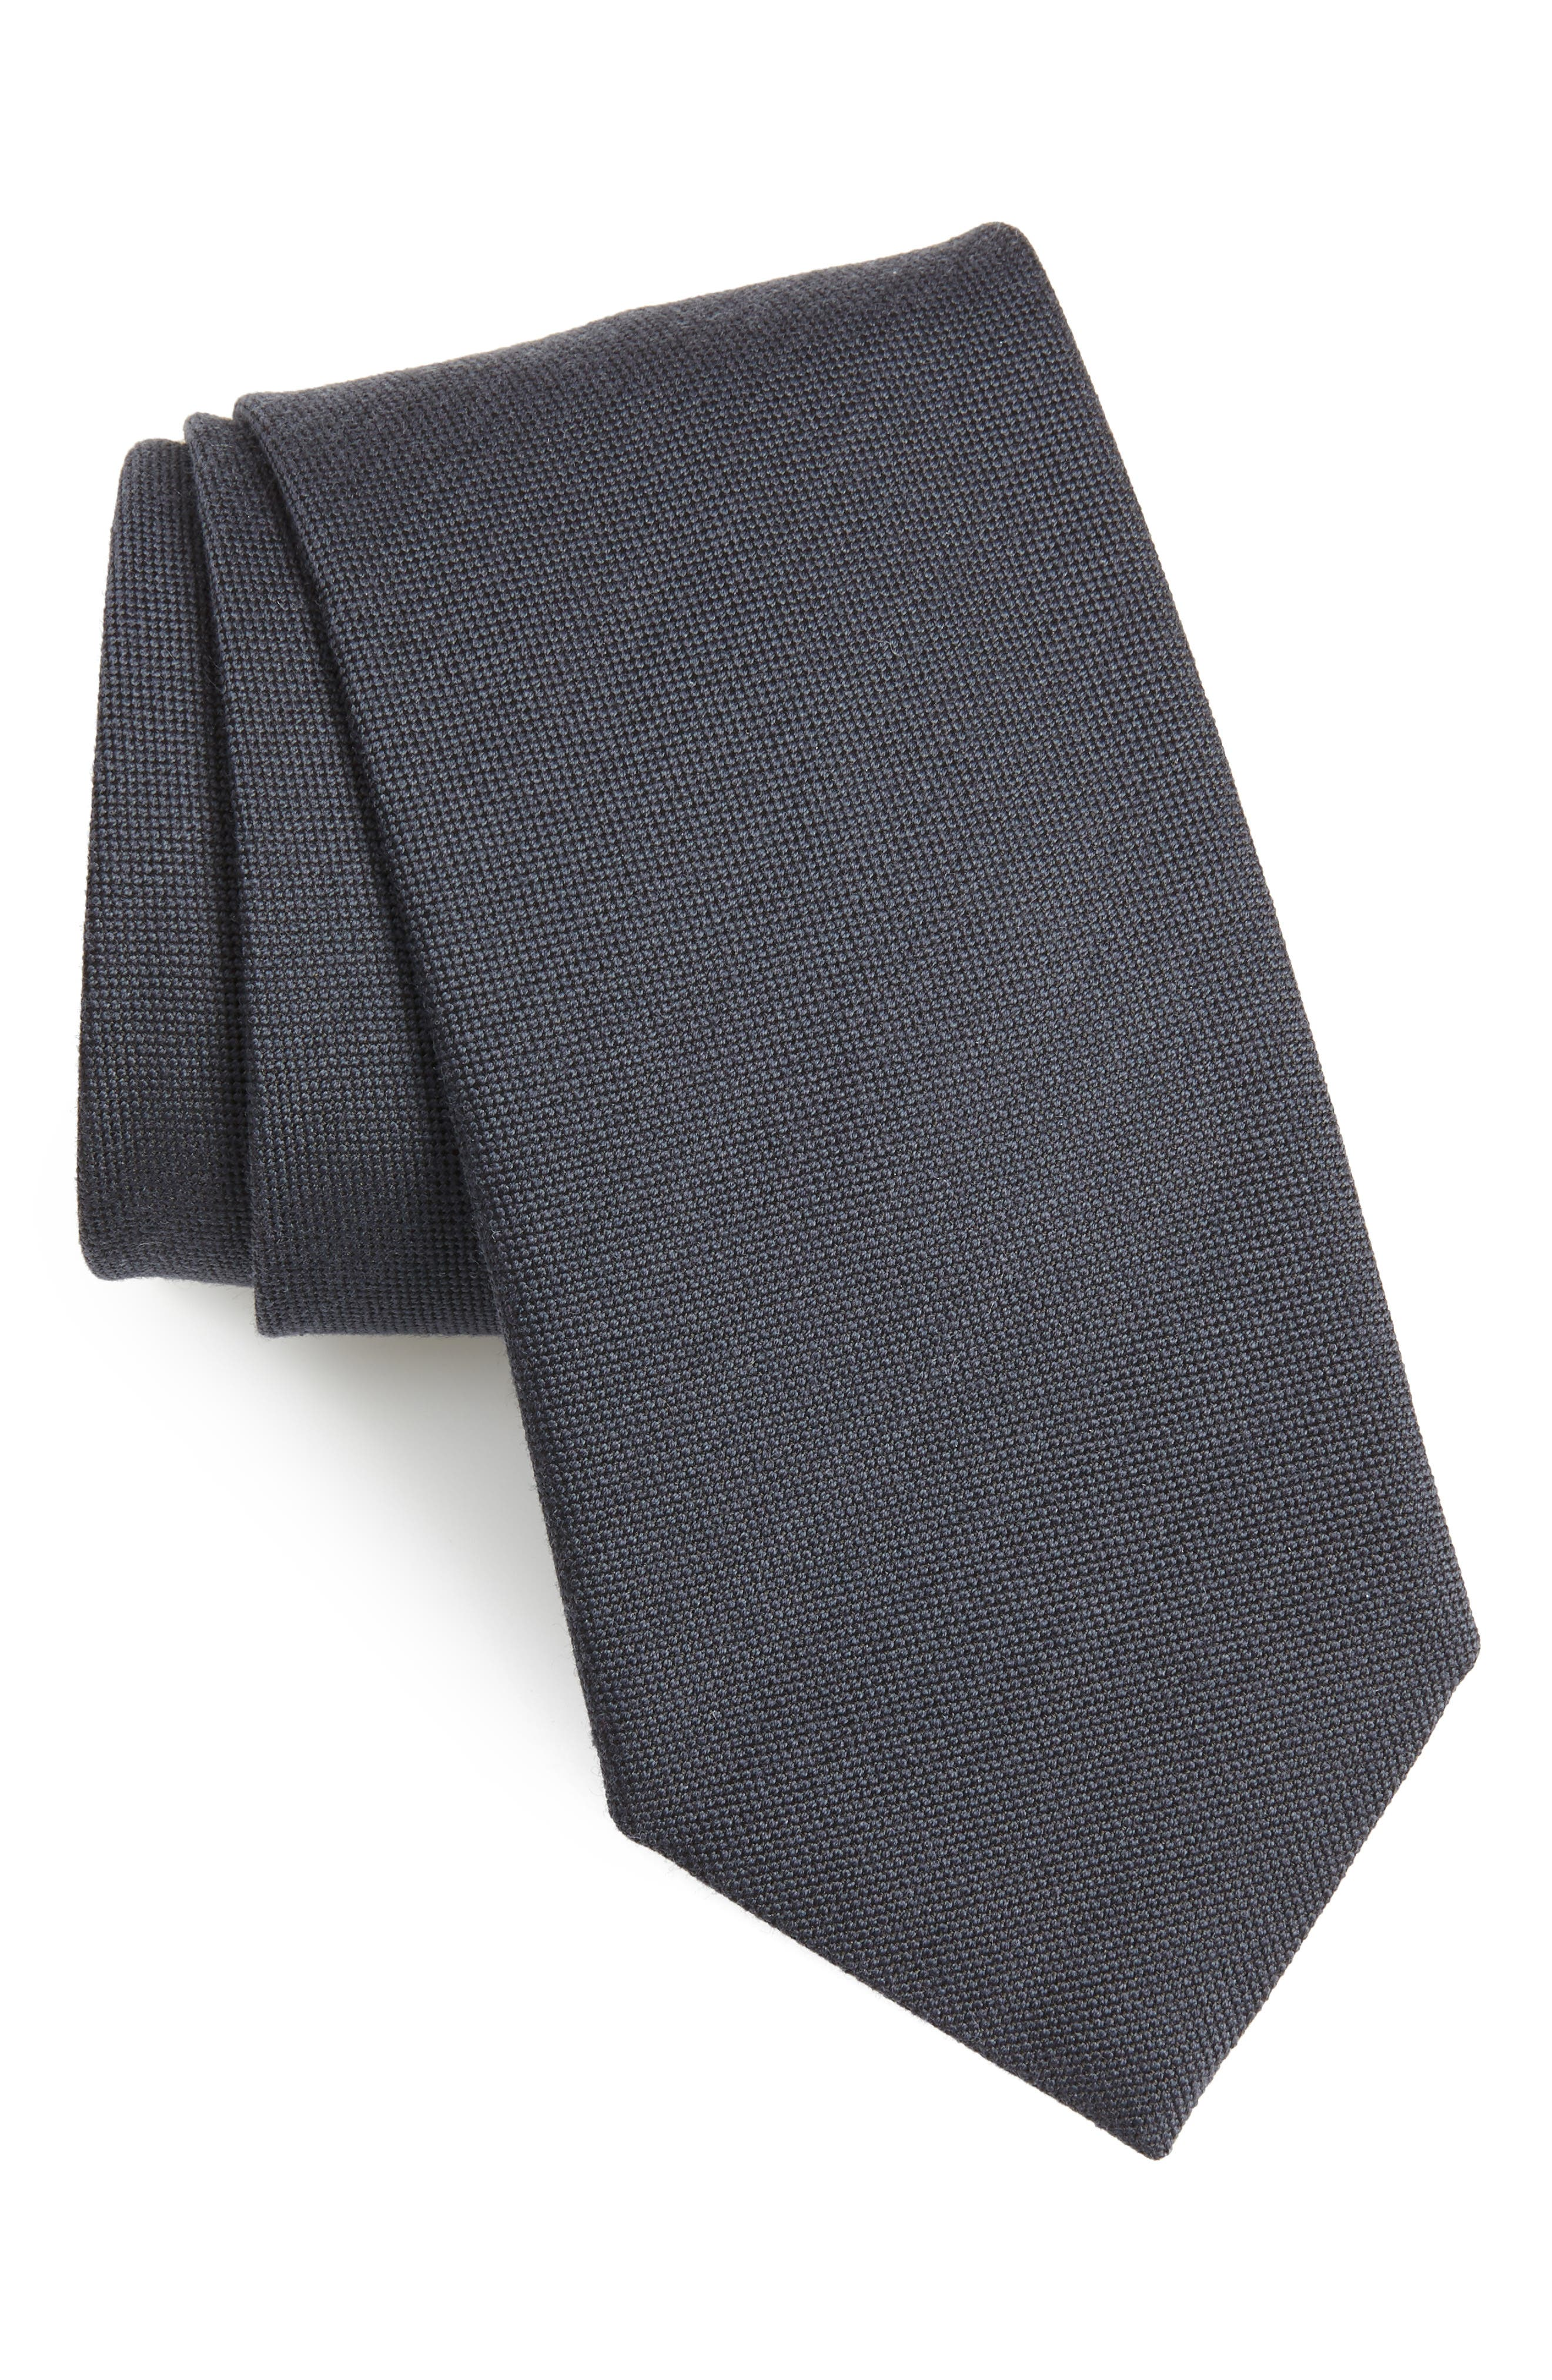 Wool & Silk Tie,                             Main thumbnail 1, color,                             410